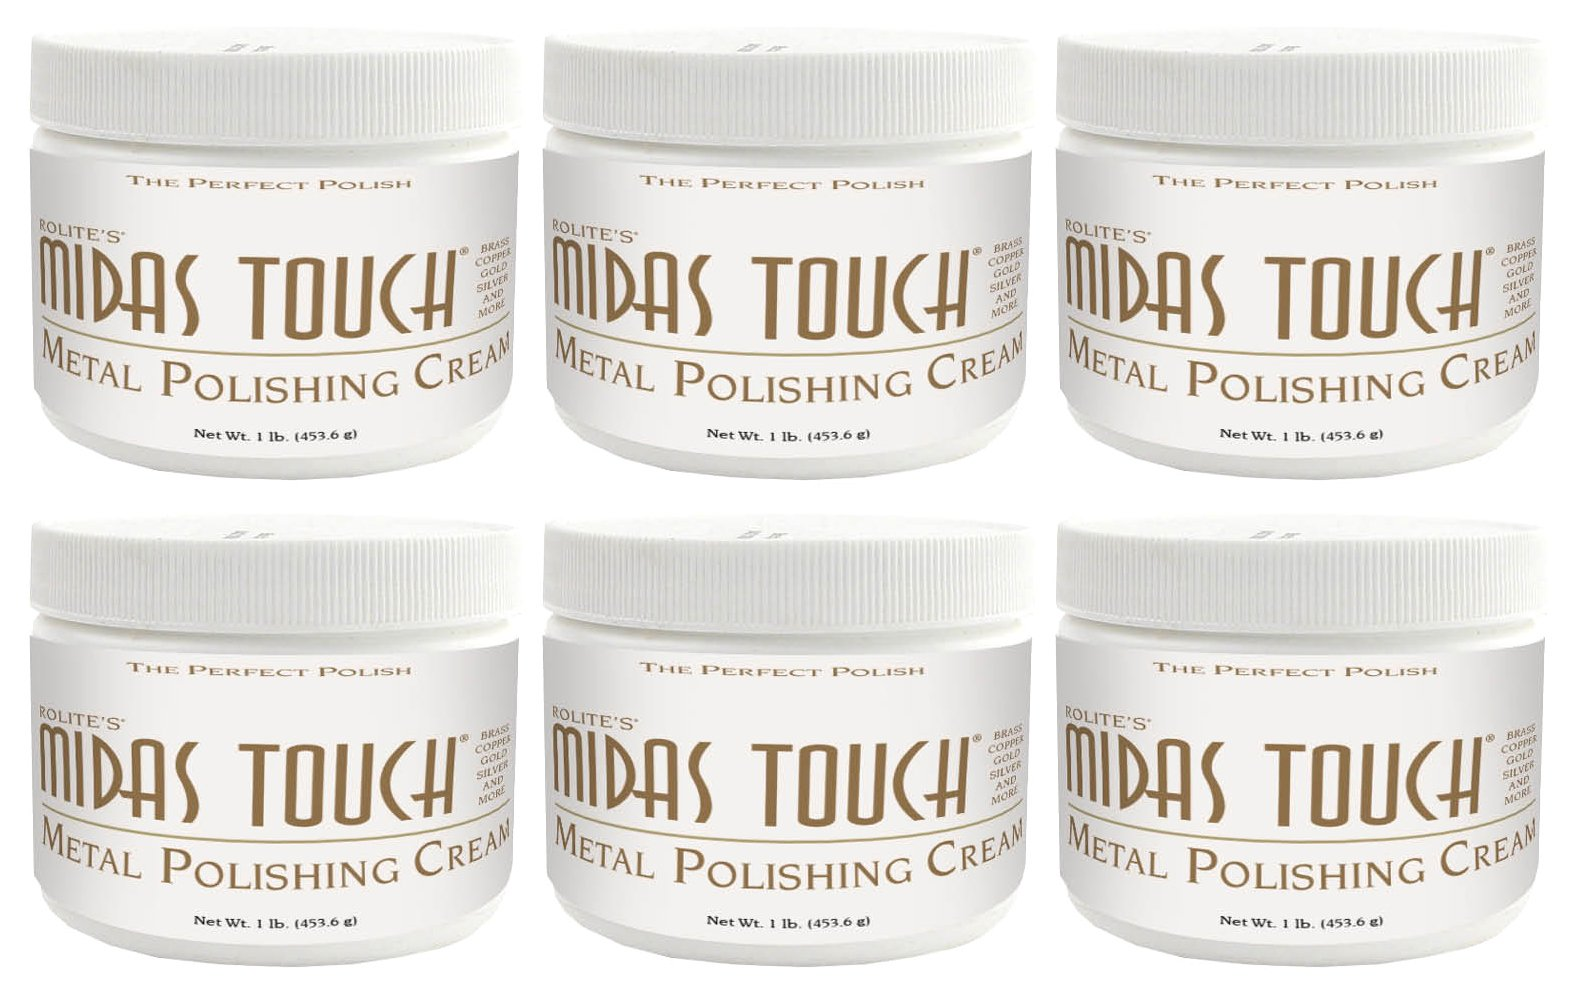 Midas Touch Metal Polishing Cream – 1lb, Cleaner & Polishing Rouge for Sterling Silver, Gold, Brass & Other Metals, 6pack, by Rolite